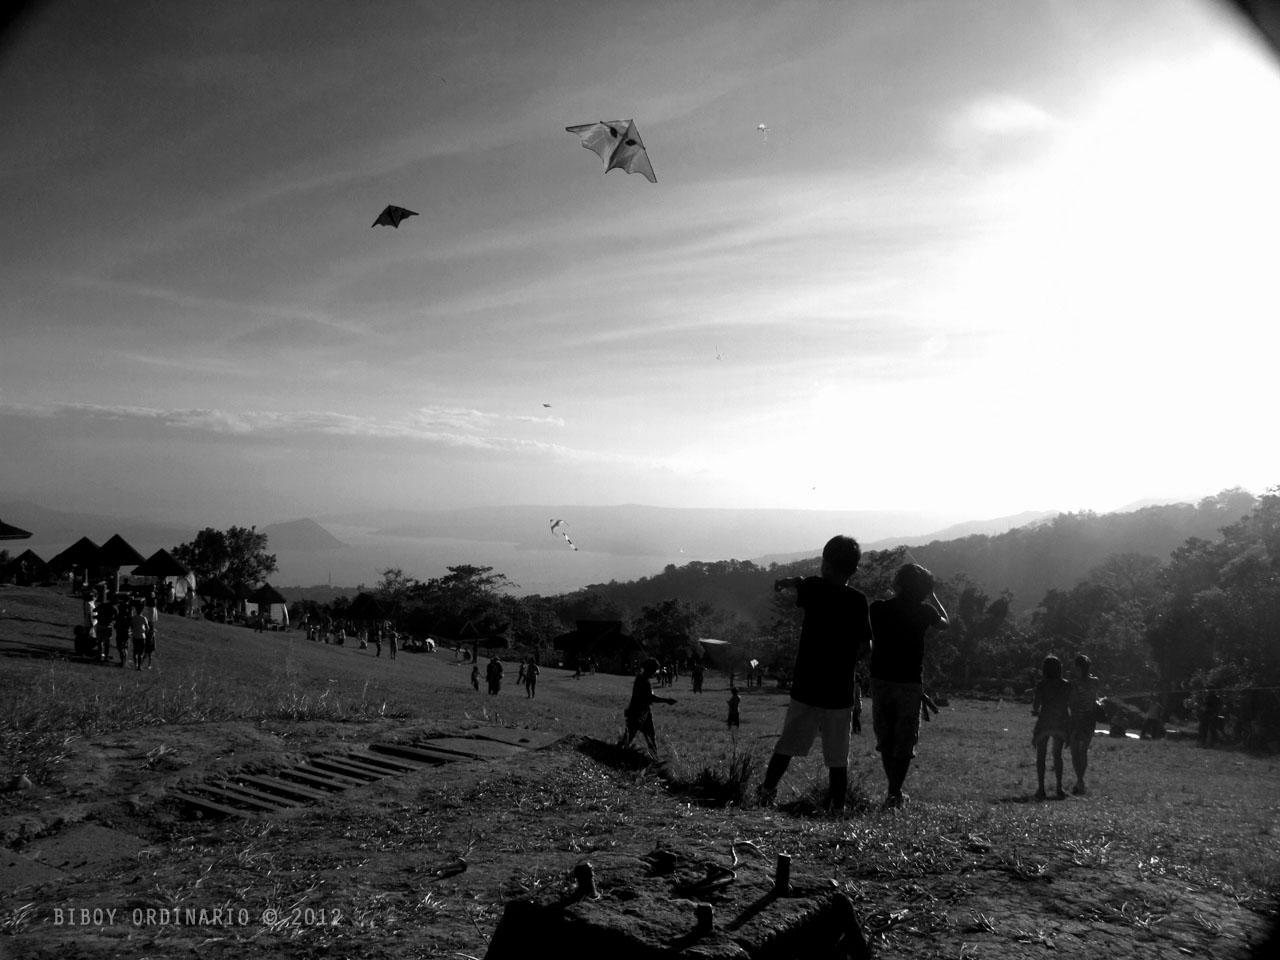 Kite flying more fun in the Philippines